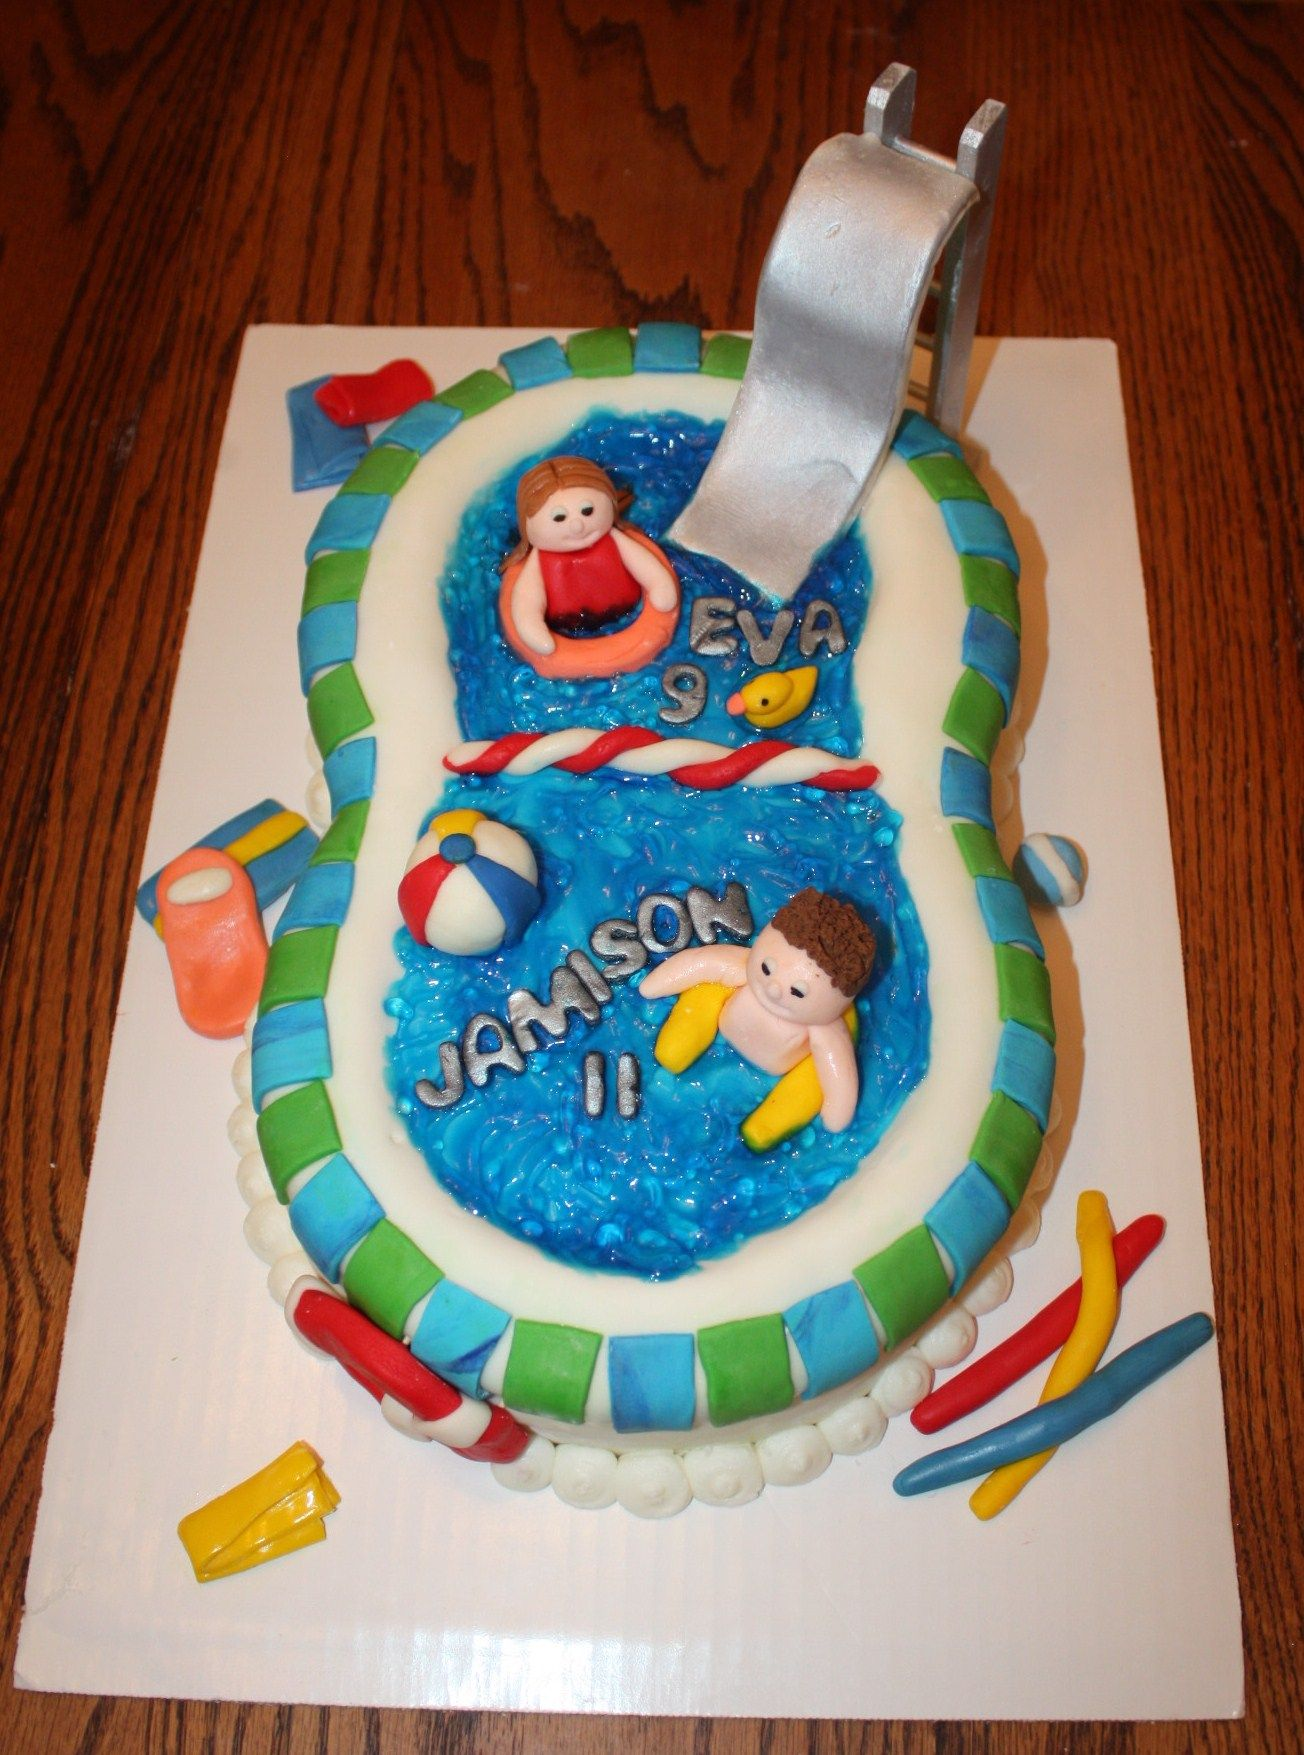 Pool Party! cake decorating ideas Pinterest